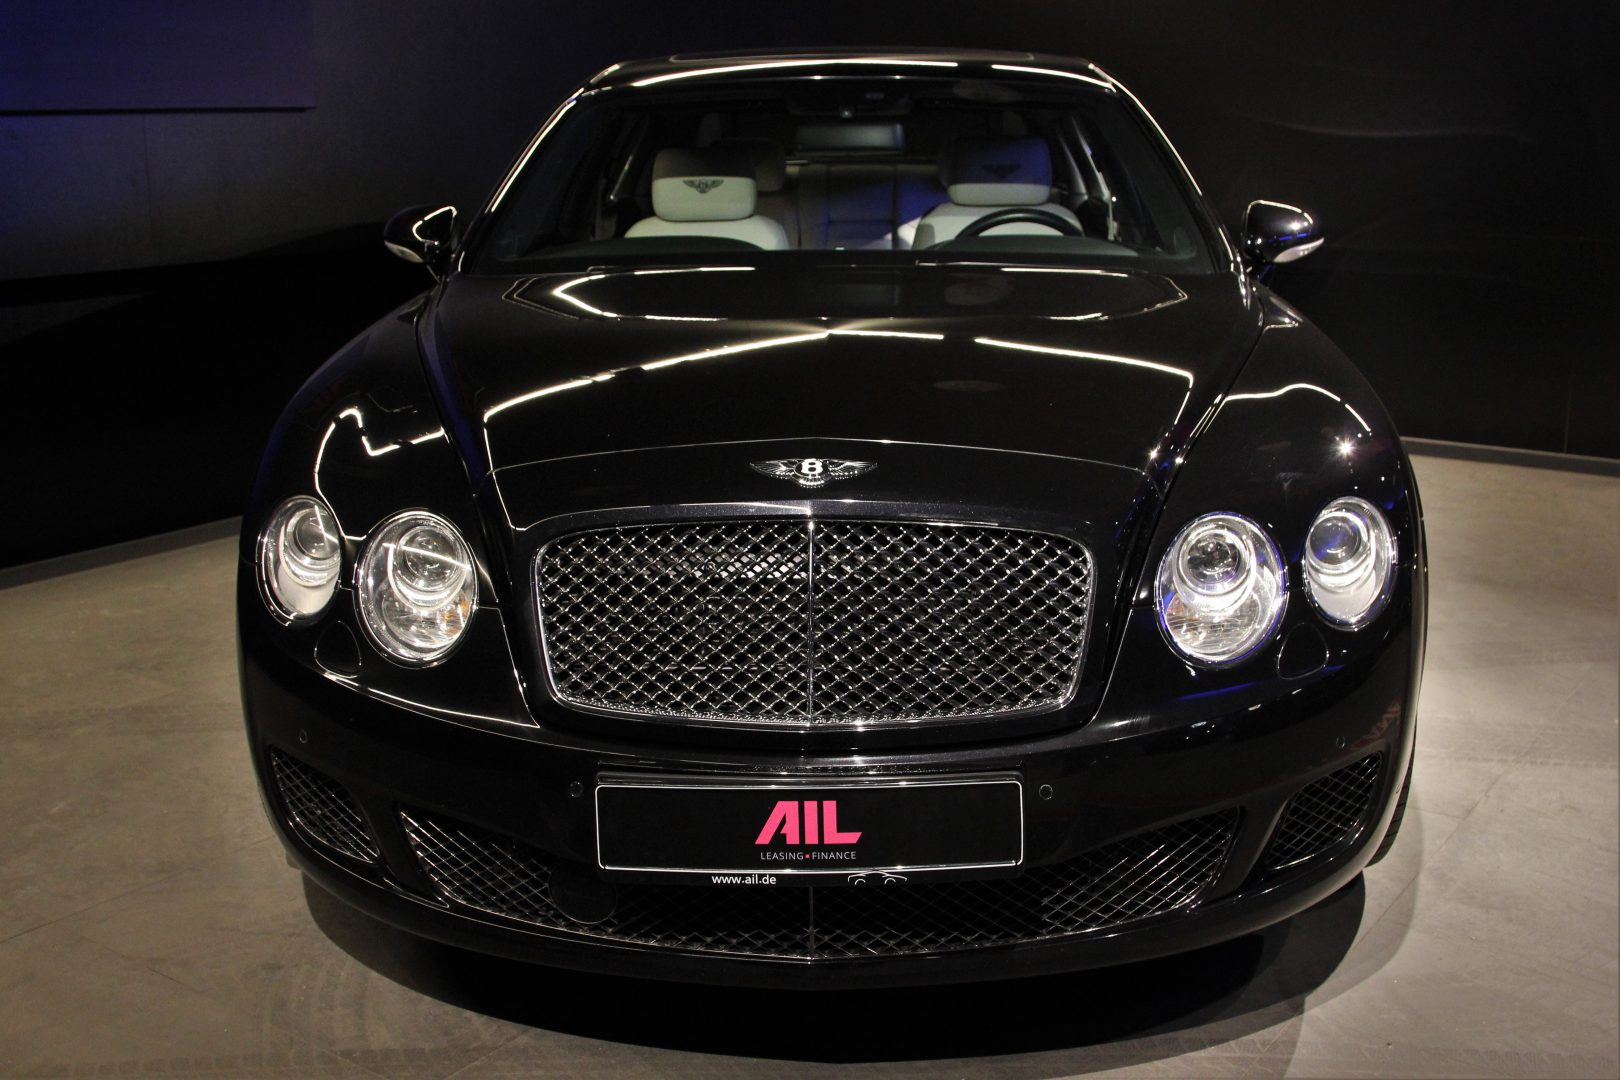 AIL Bentley Continental Flying Spur Speed Mulliner RSE 10